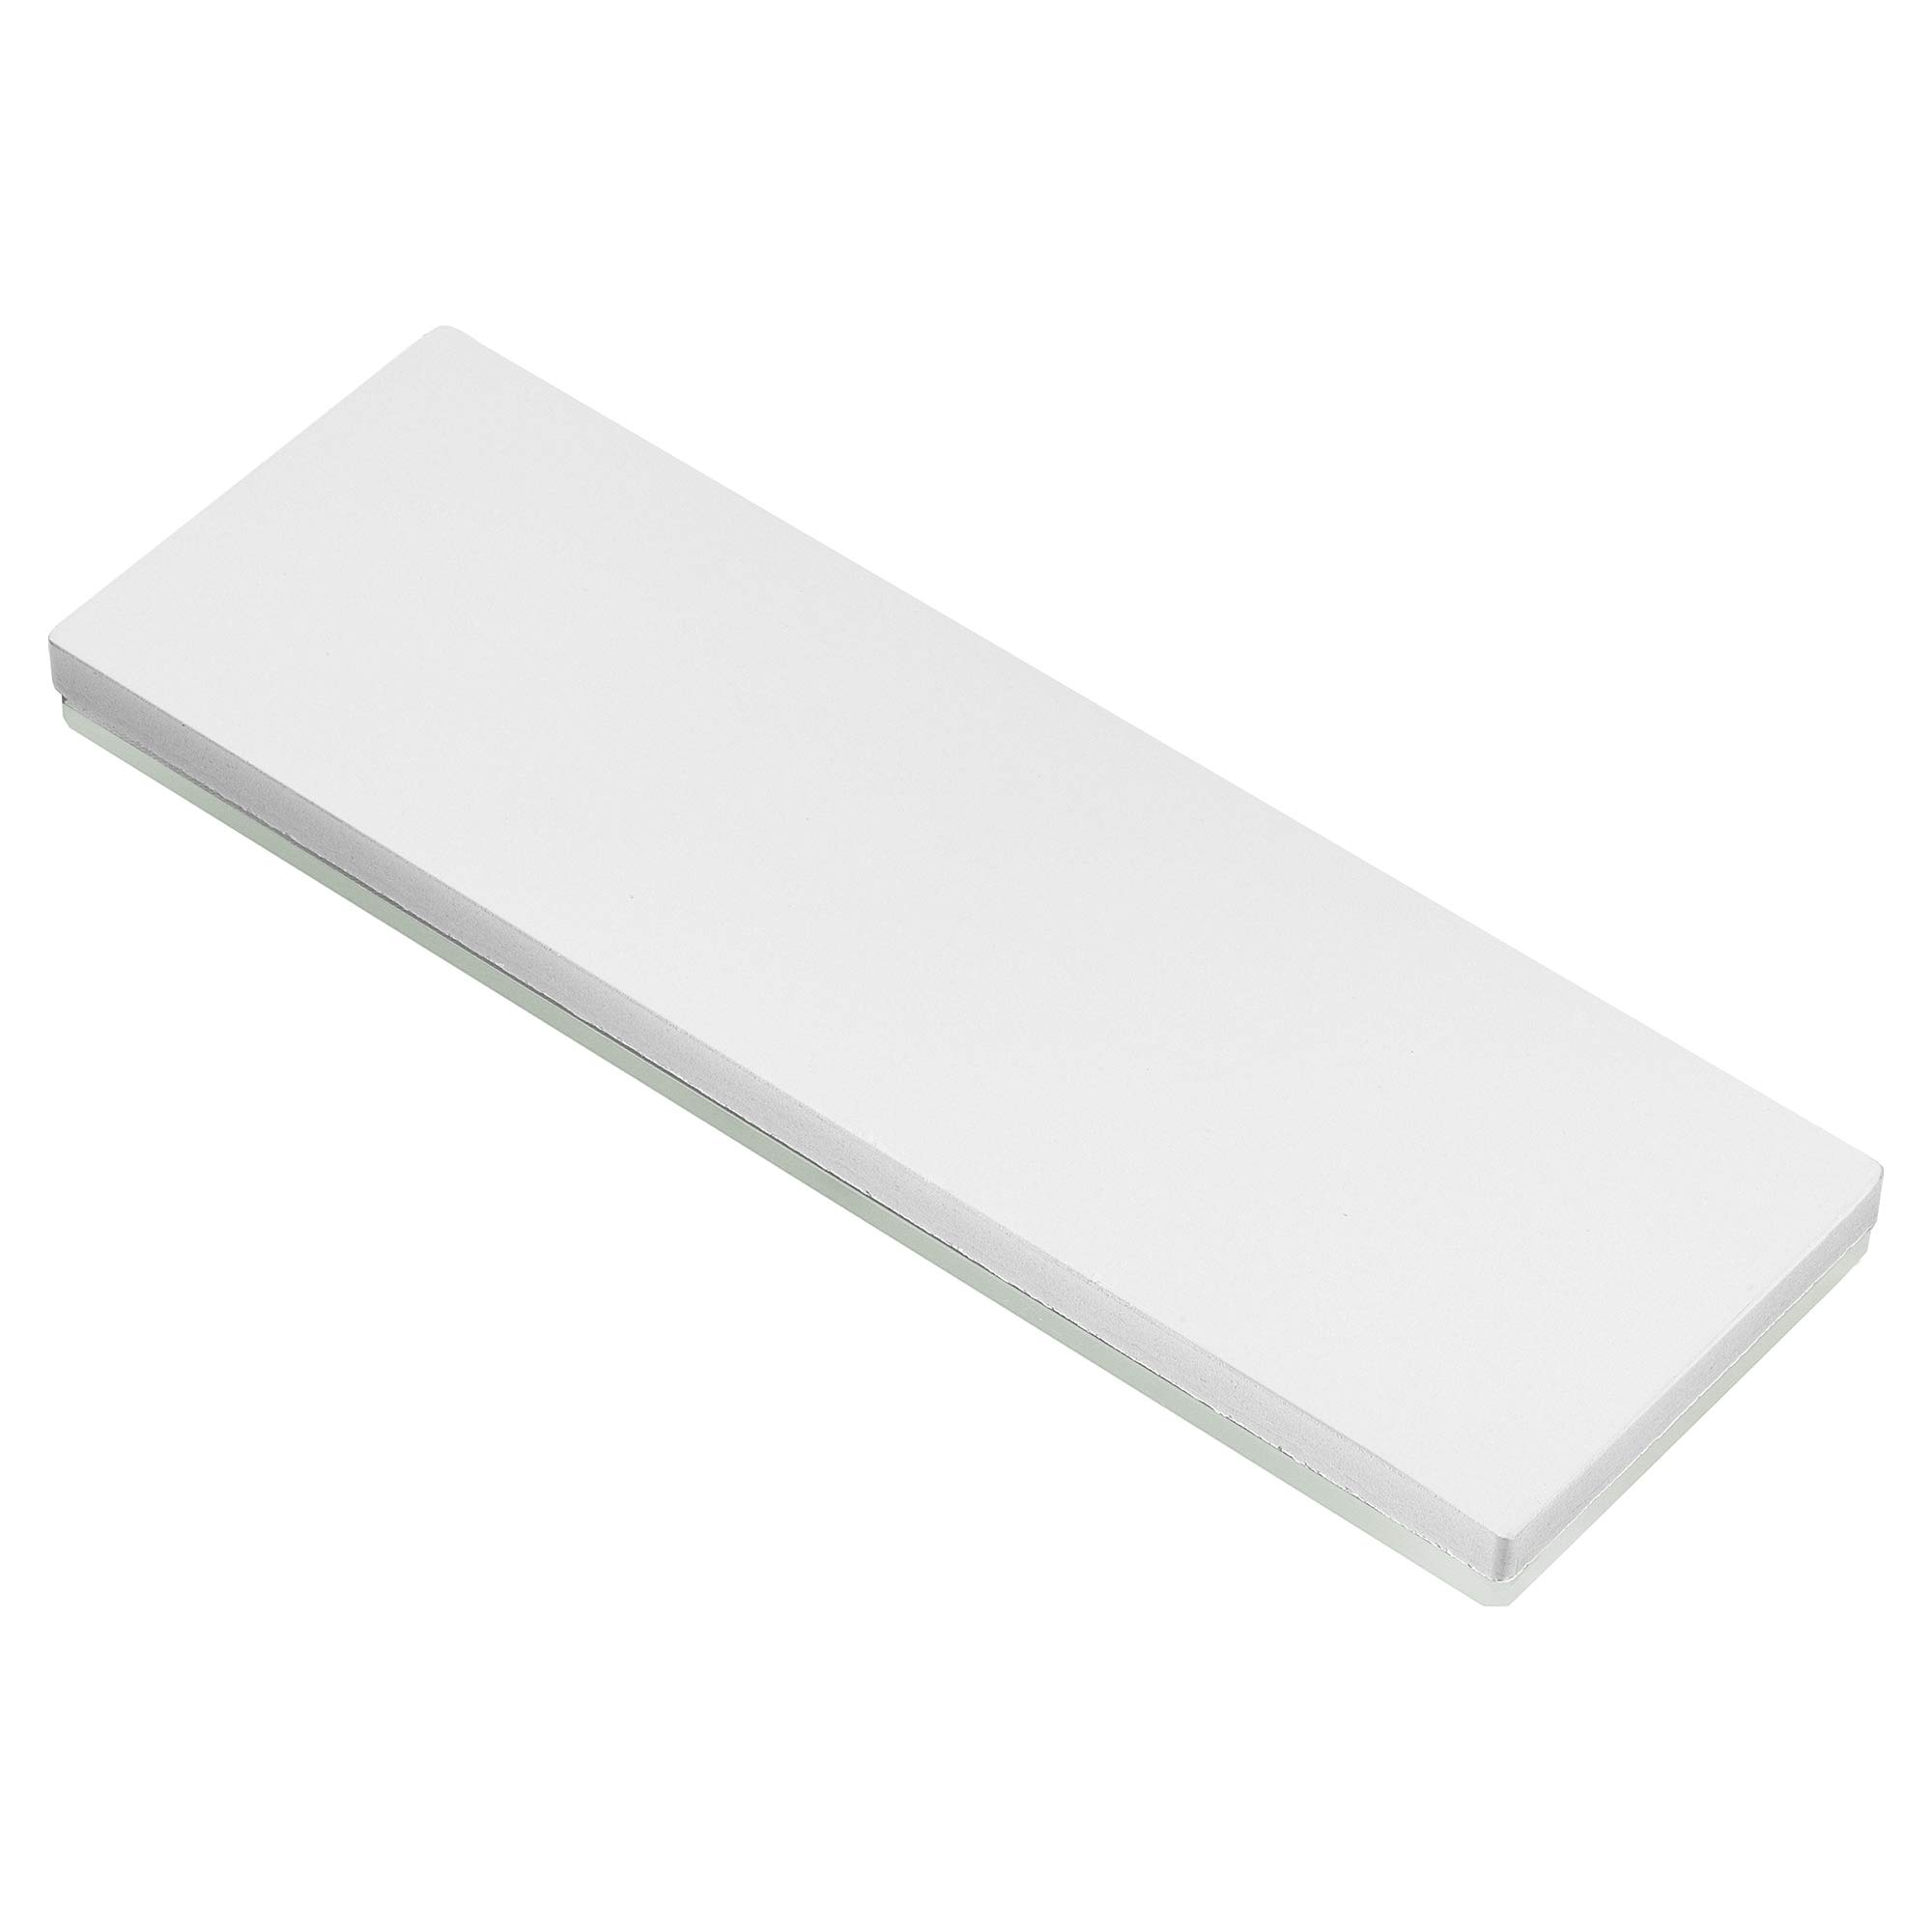 ZWILLING J.A. Henckels 34999-043 10000 Grit Glass Water Sharpening Stone